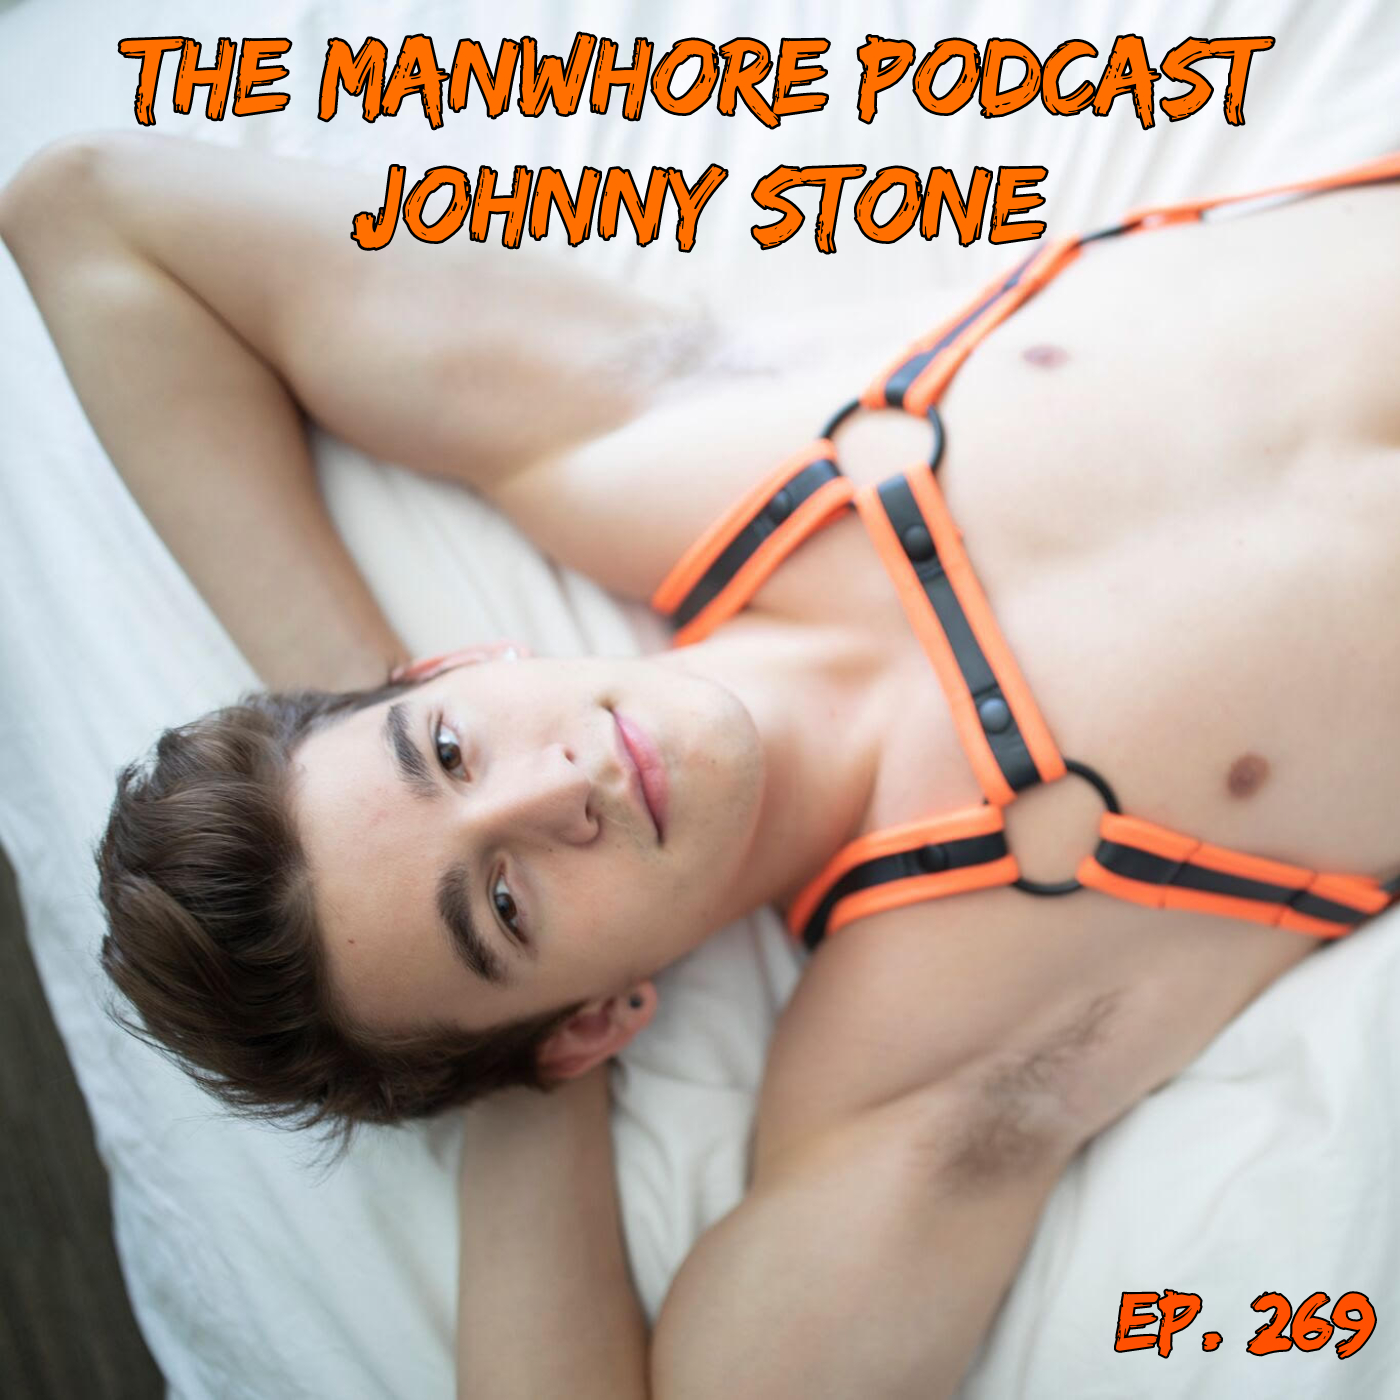 The Manwhore Podcast: A Sex-Positive Quest - Ep. 269: Stroking It For Your Entertainment with Johnny Stone